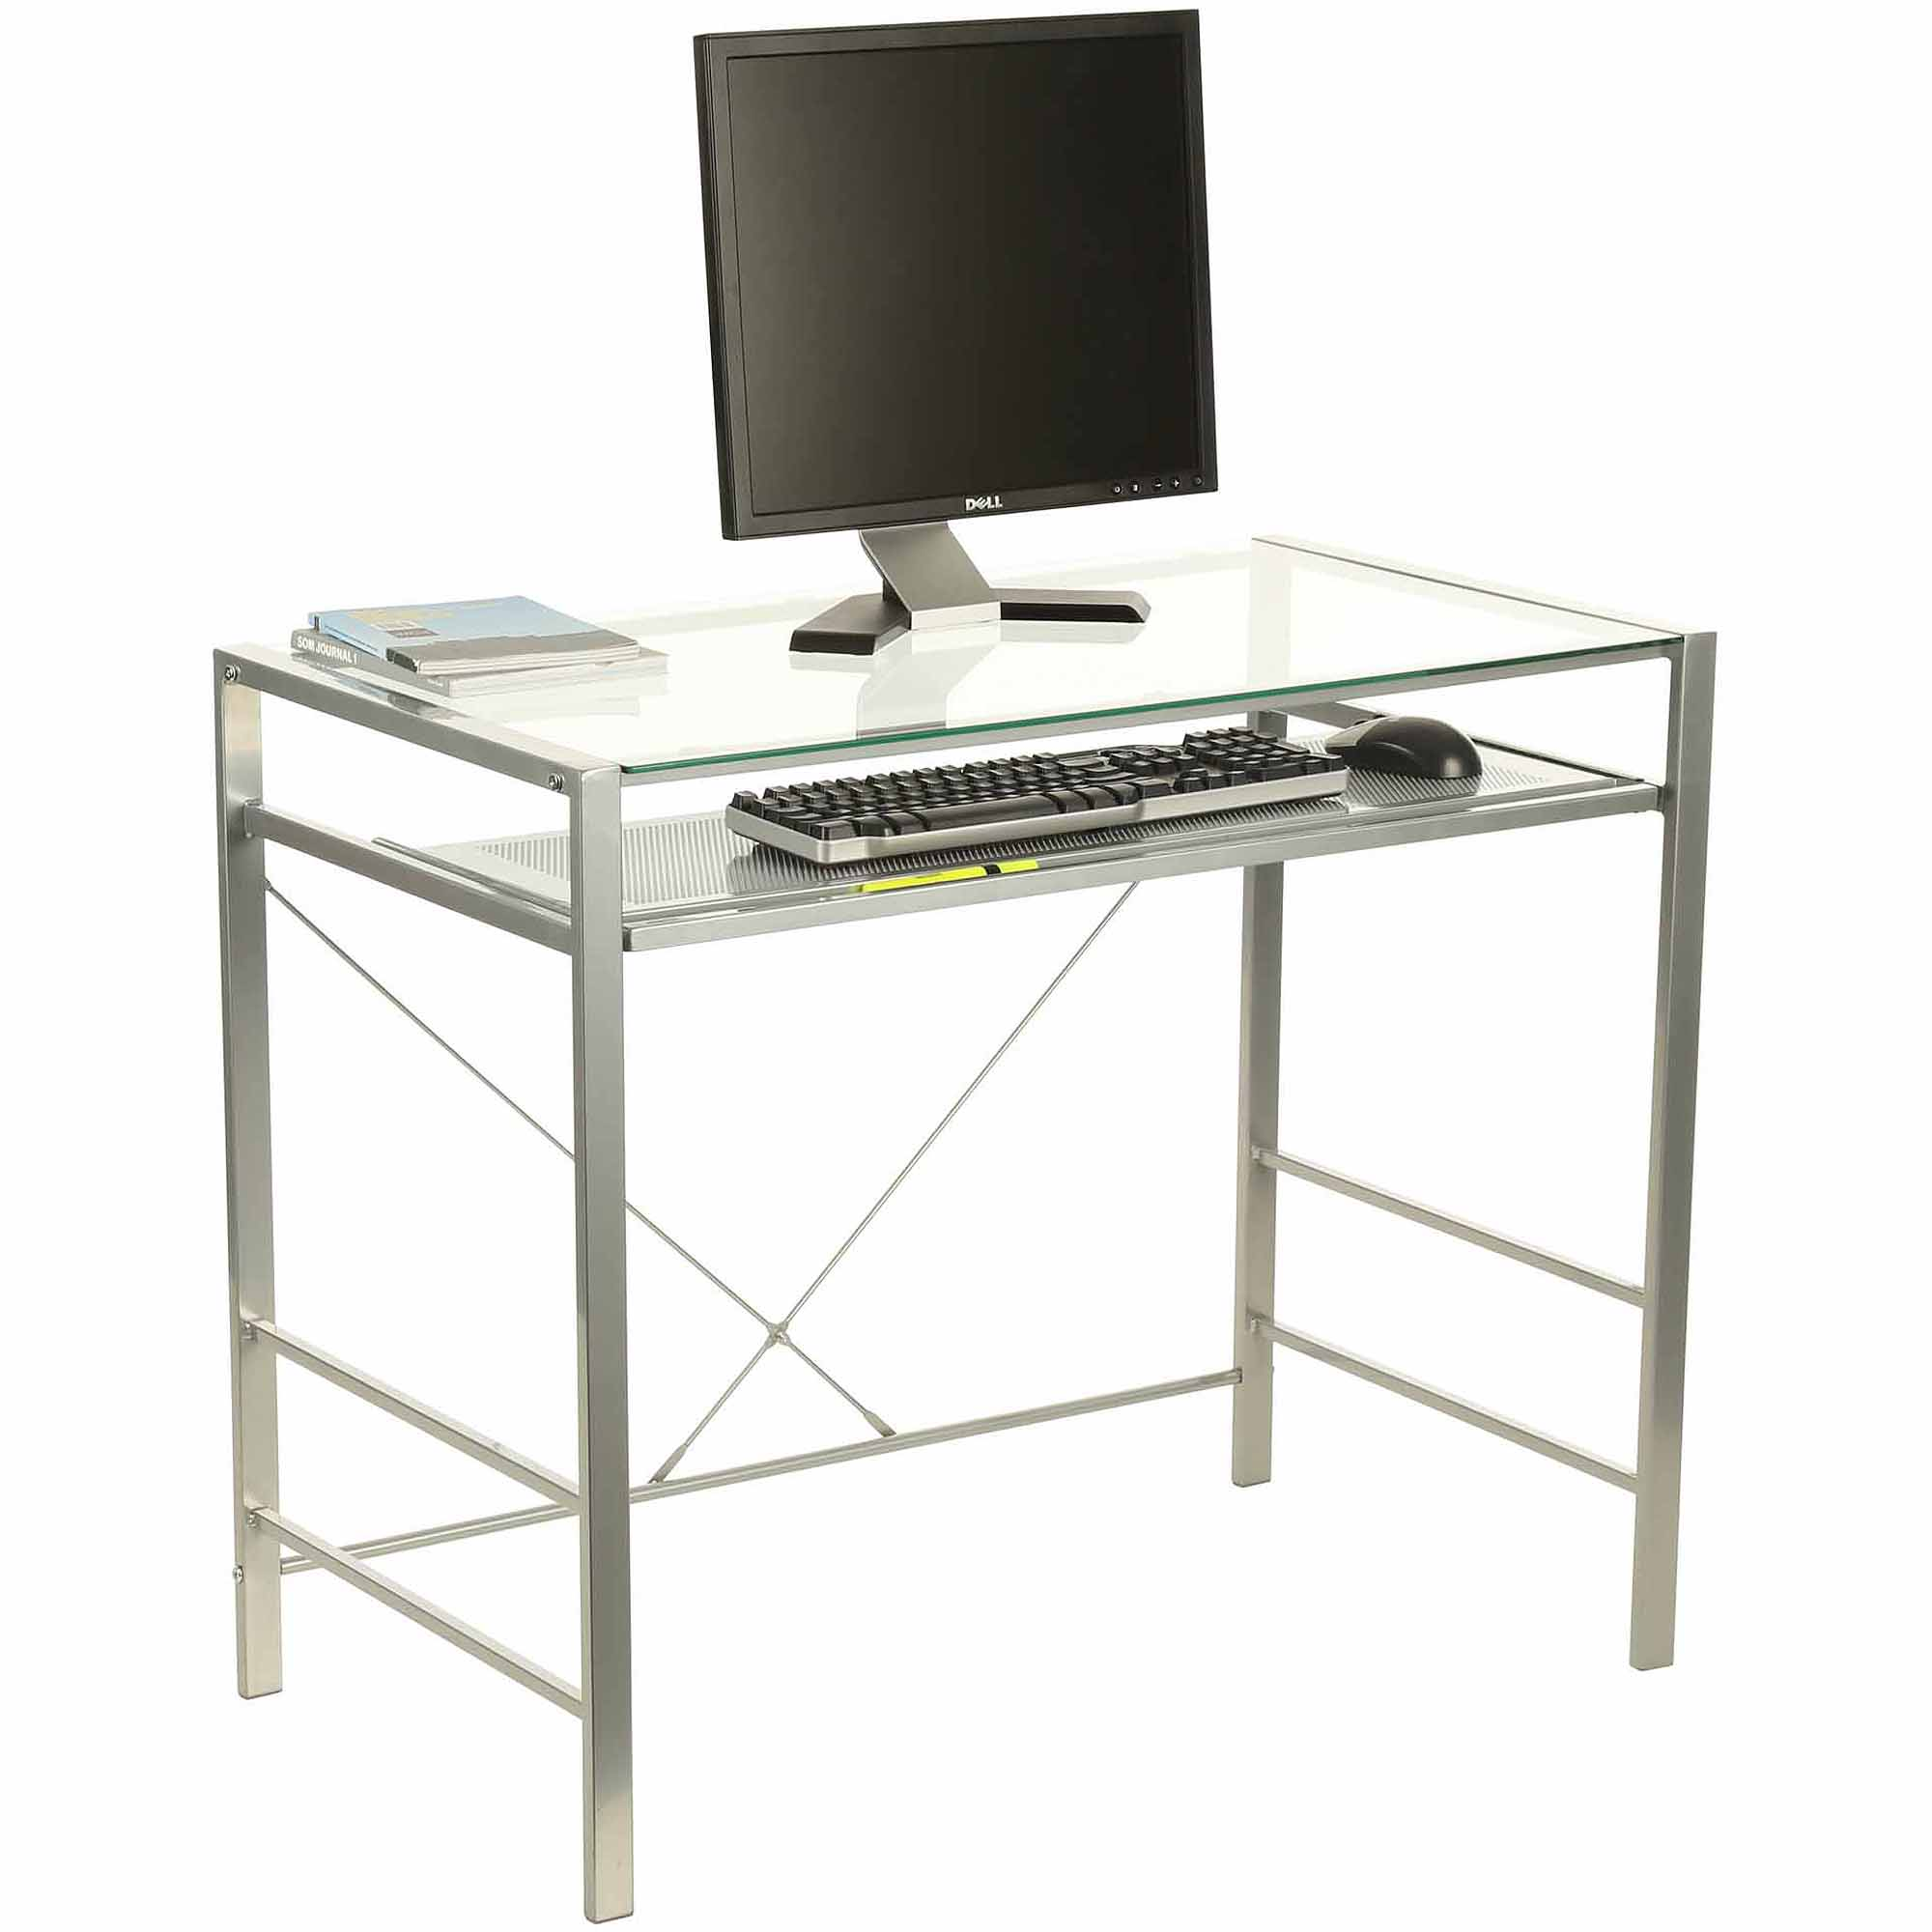 sports shoes 215a2 0da7d Capri Glass and Metal Desk, Silver